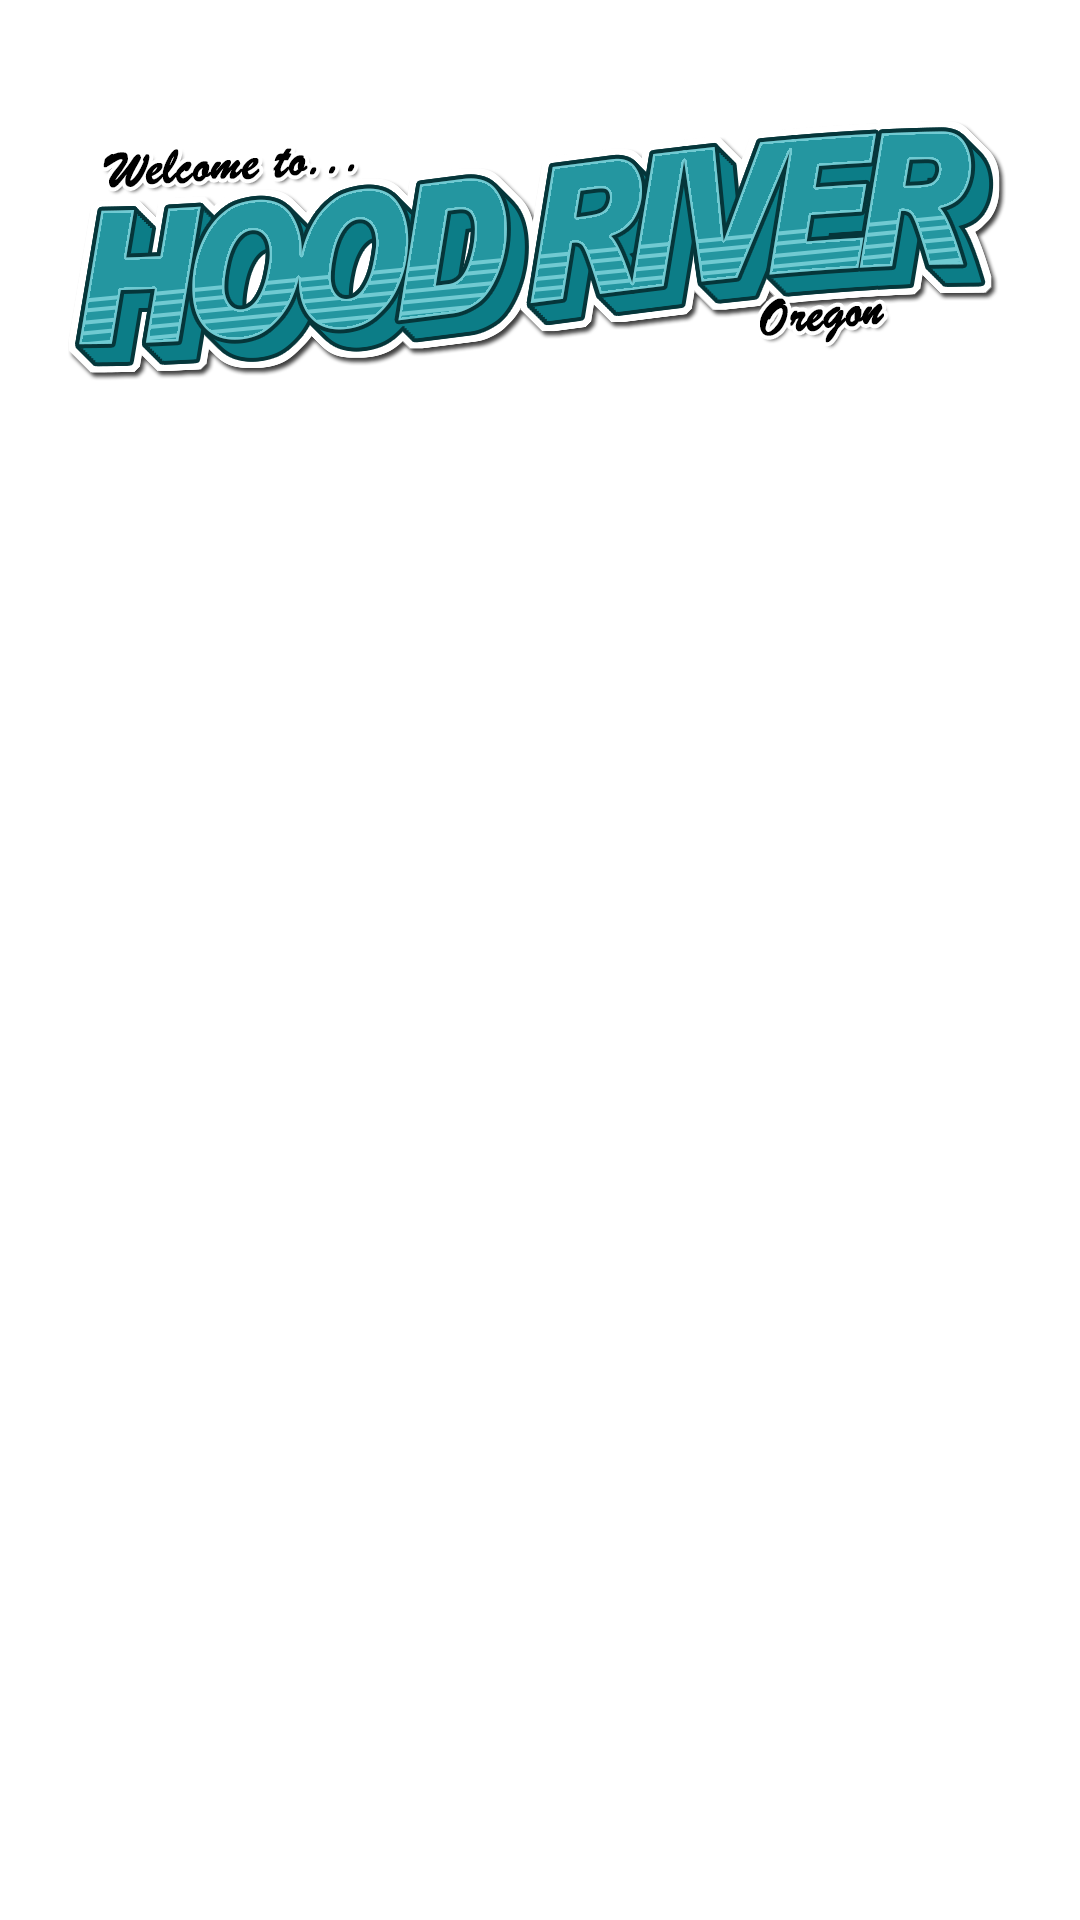 Snapchat template png. First geofilter approved snapchatgeofilters